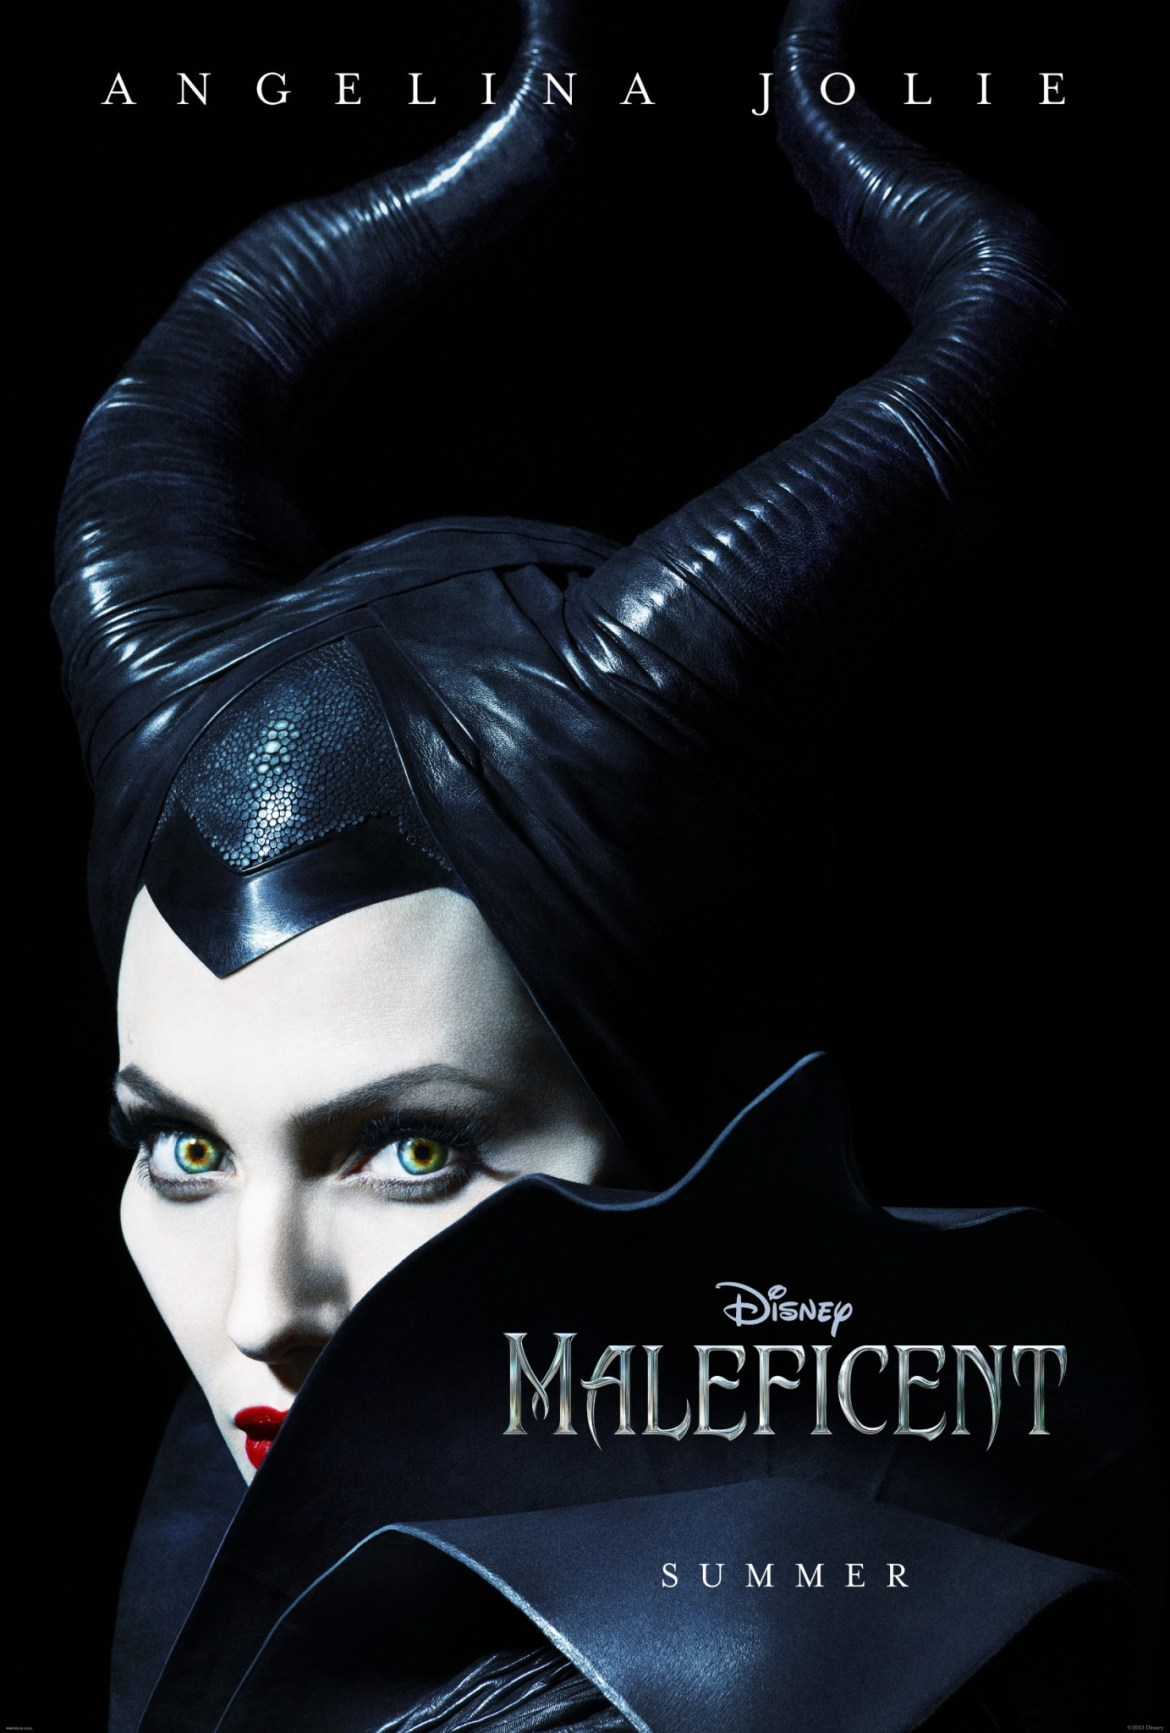 Just Released – New Poster for Maleficent